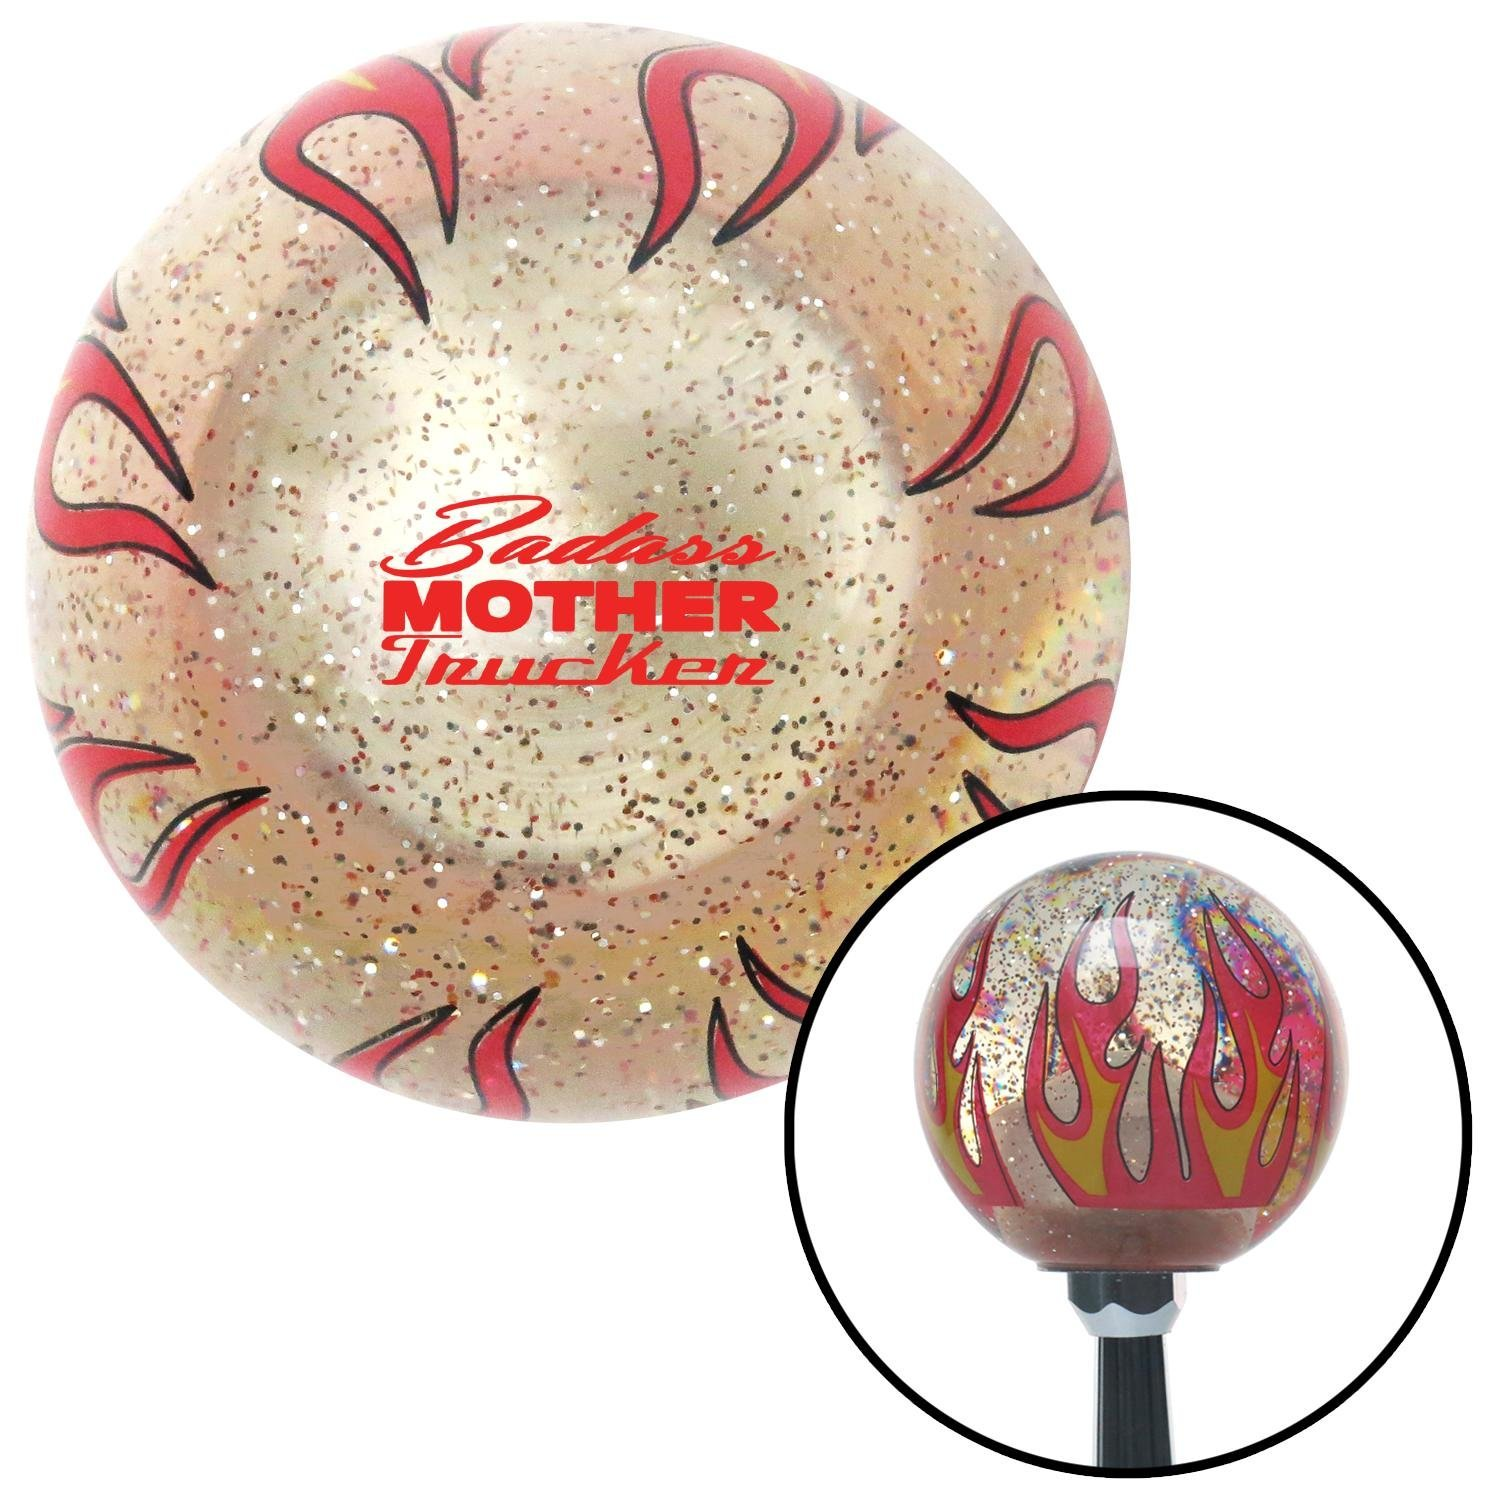 Red Badass Mother Trucker Clear Flame Metal Flake with M16 x 1.5 Insert American Shifter 296145 Shift Knob